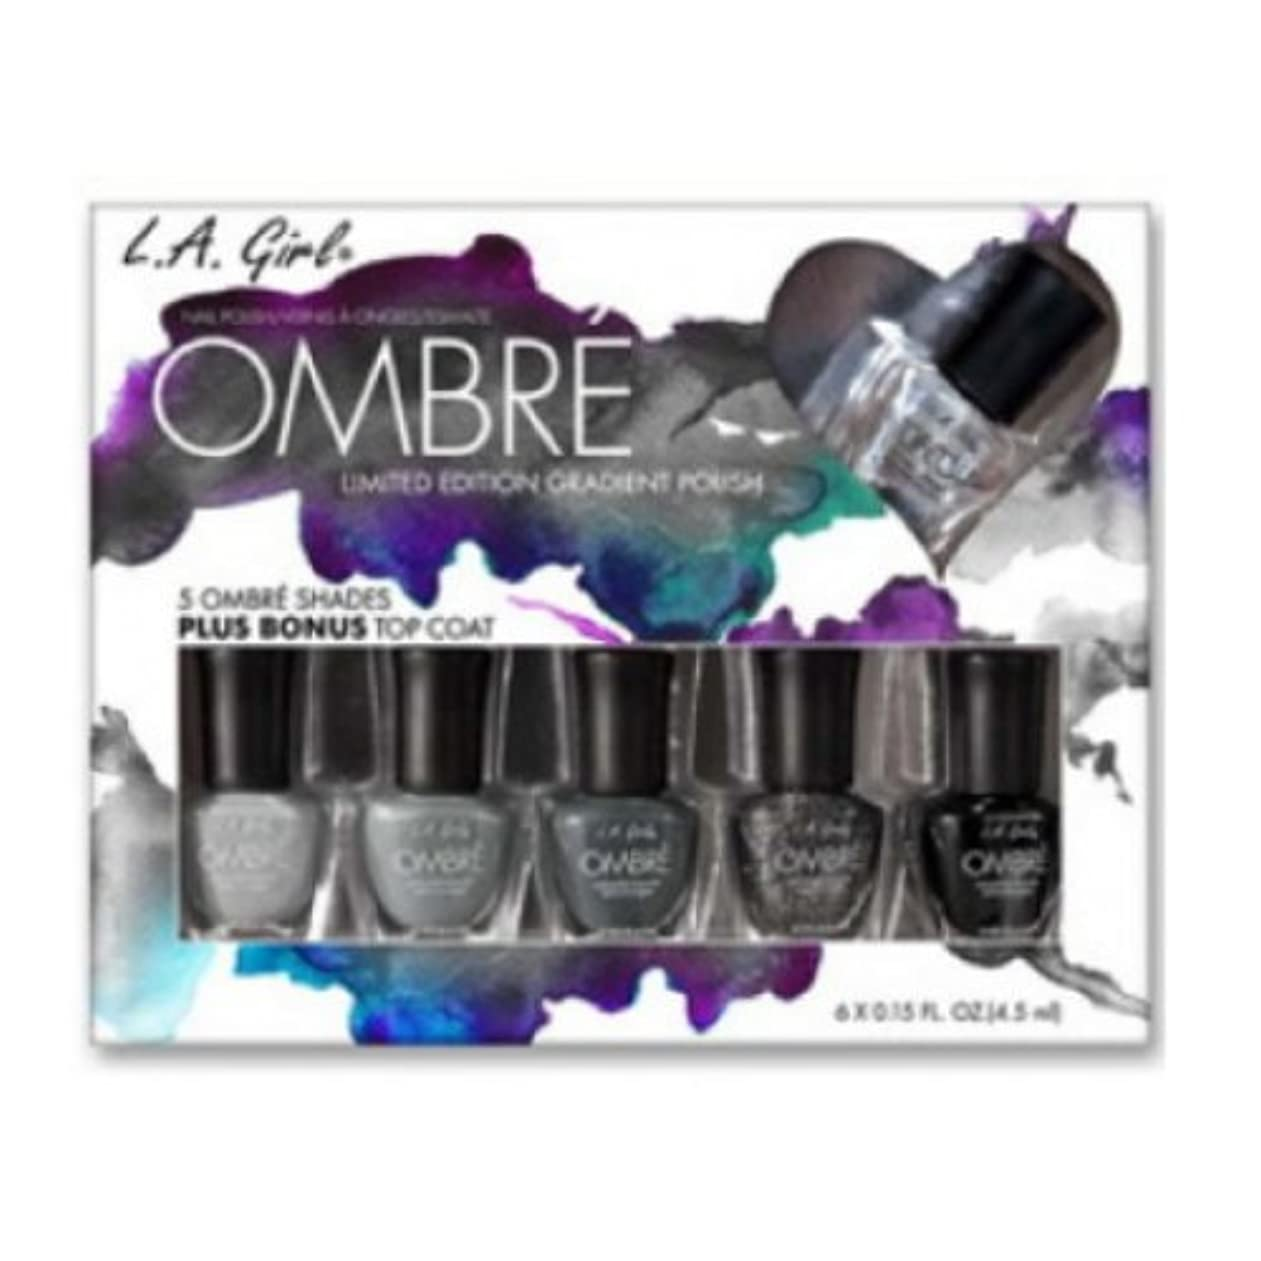 管理するラフ睡眠サスティーン(6 Pack) L.A. GIRL Ombre Limited Edition Gradient Polish Set - Midnite (並行輸入品)